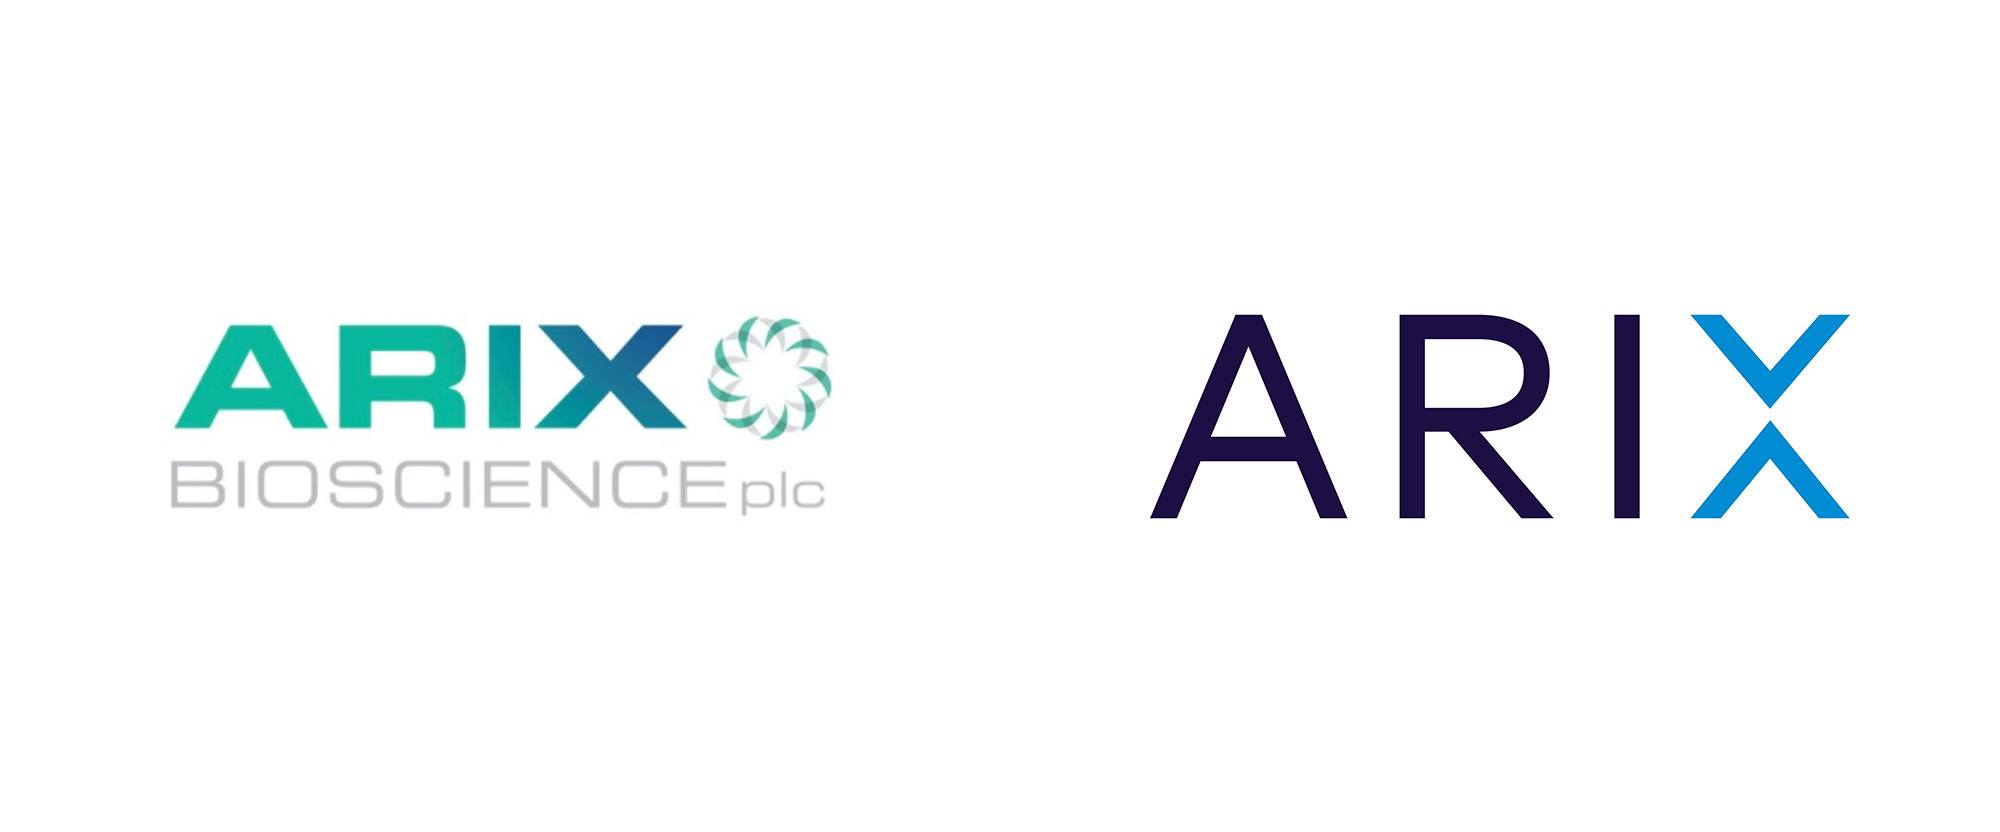 New Logo and Identity for Arix Bioscience by Ether Creative